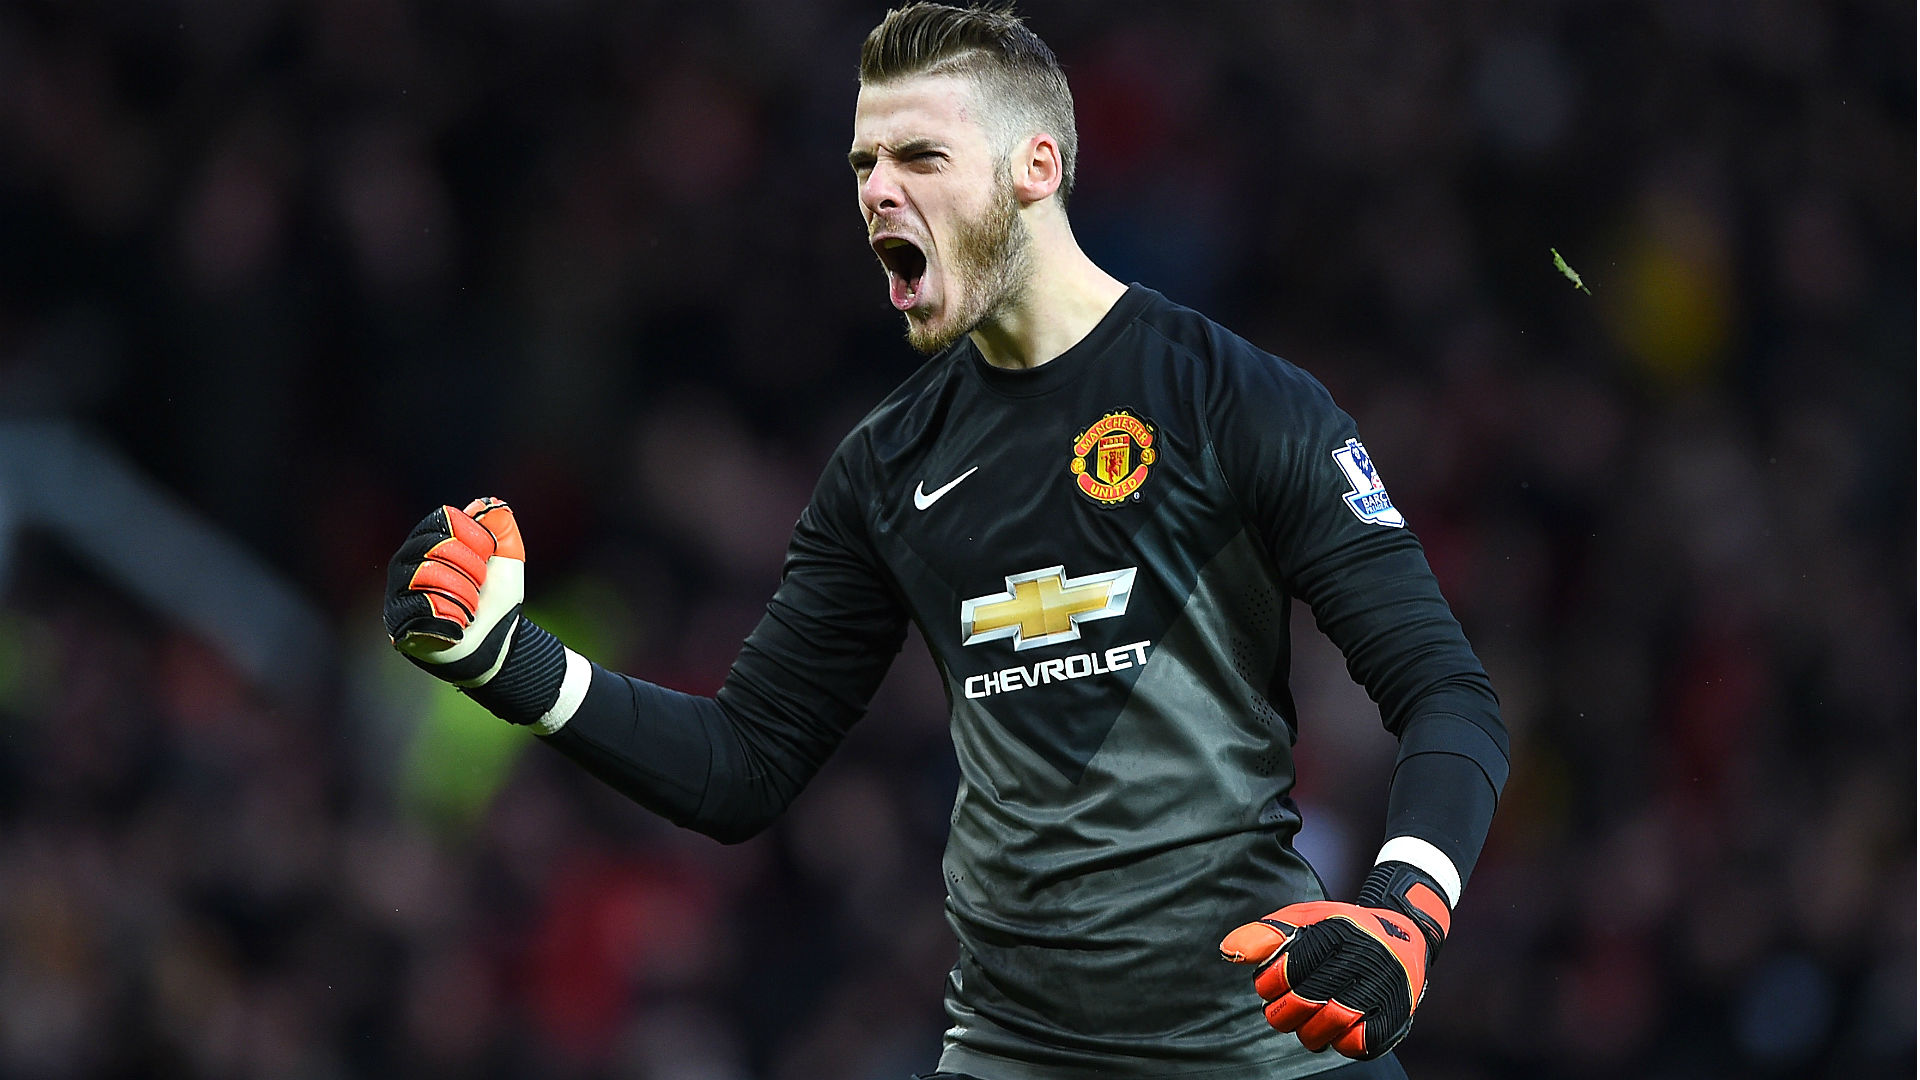 Aston Villa vs. Manchester United betting preview and pick – Red Devils expected to roll